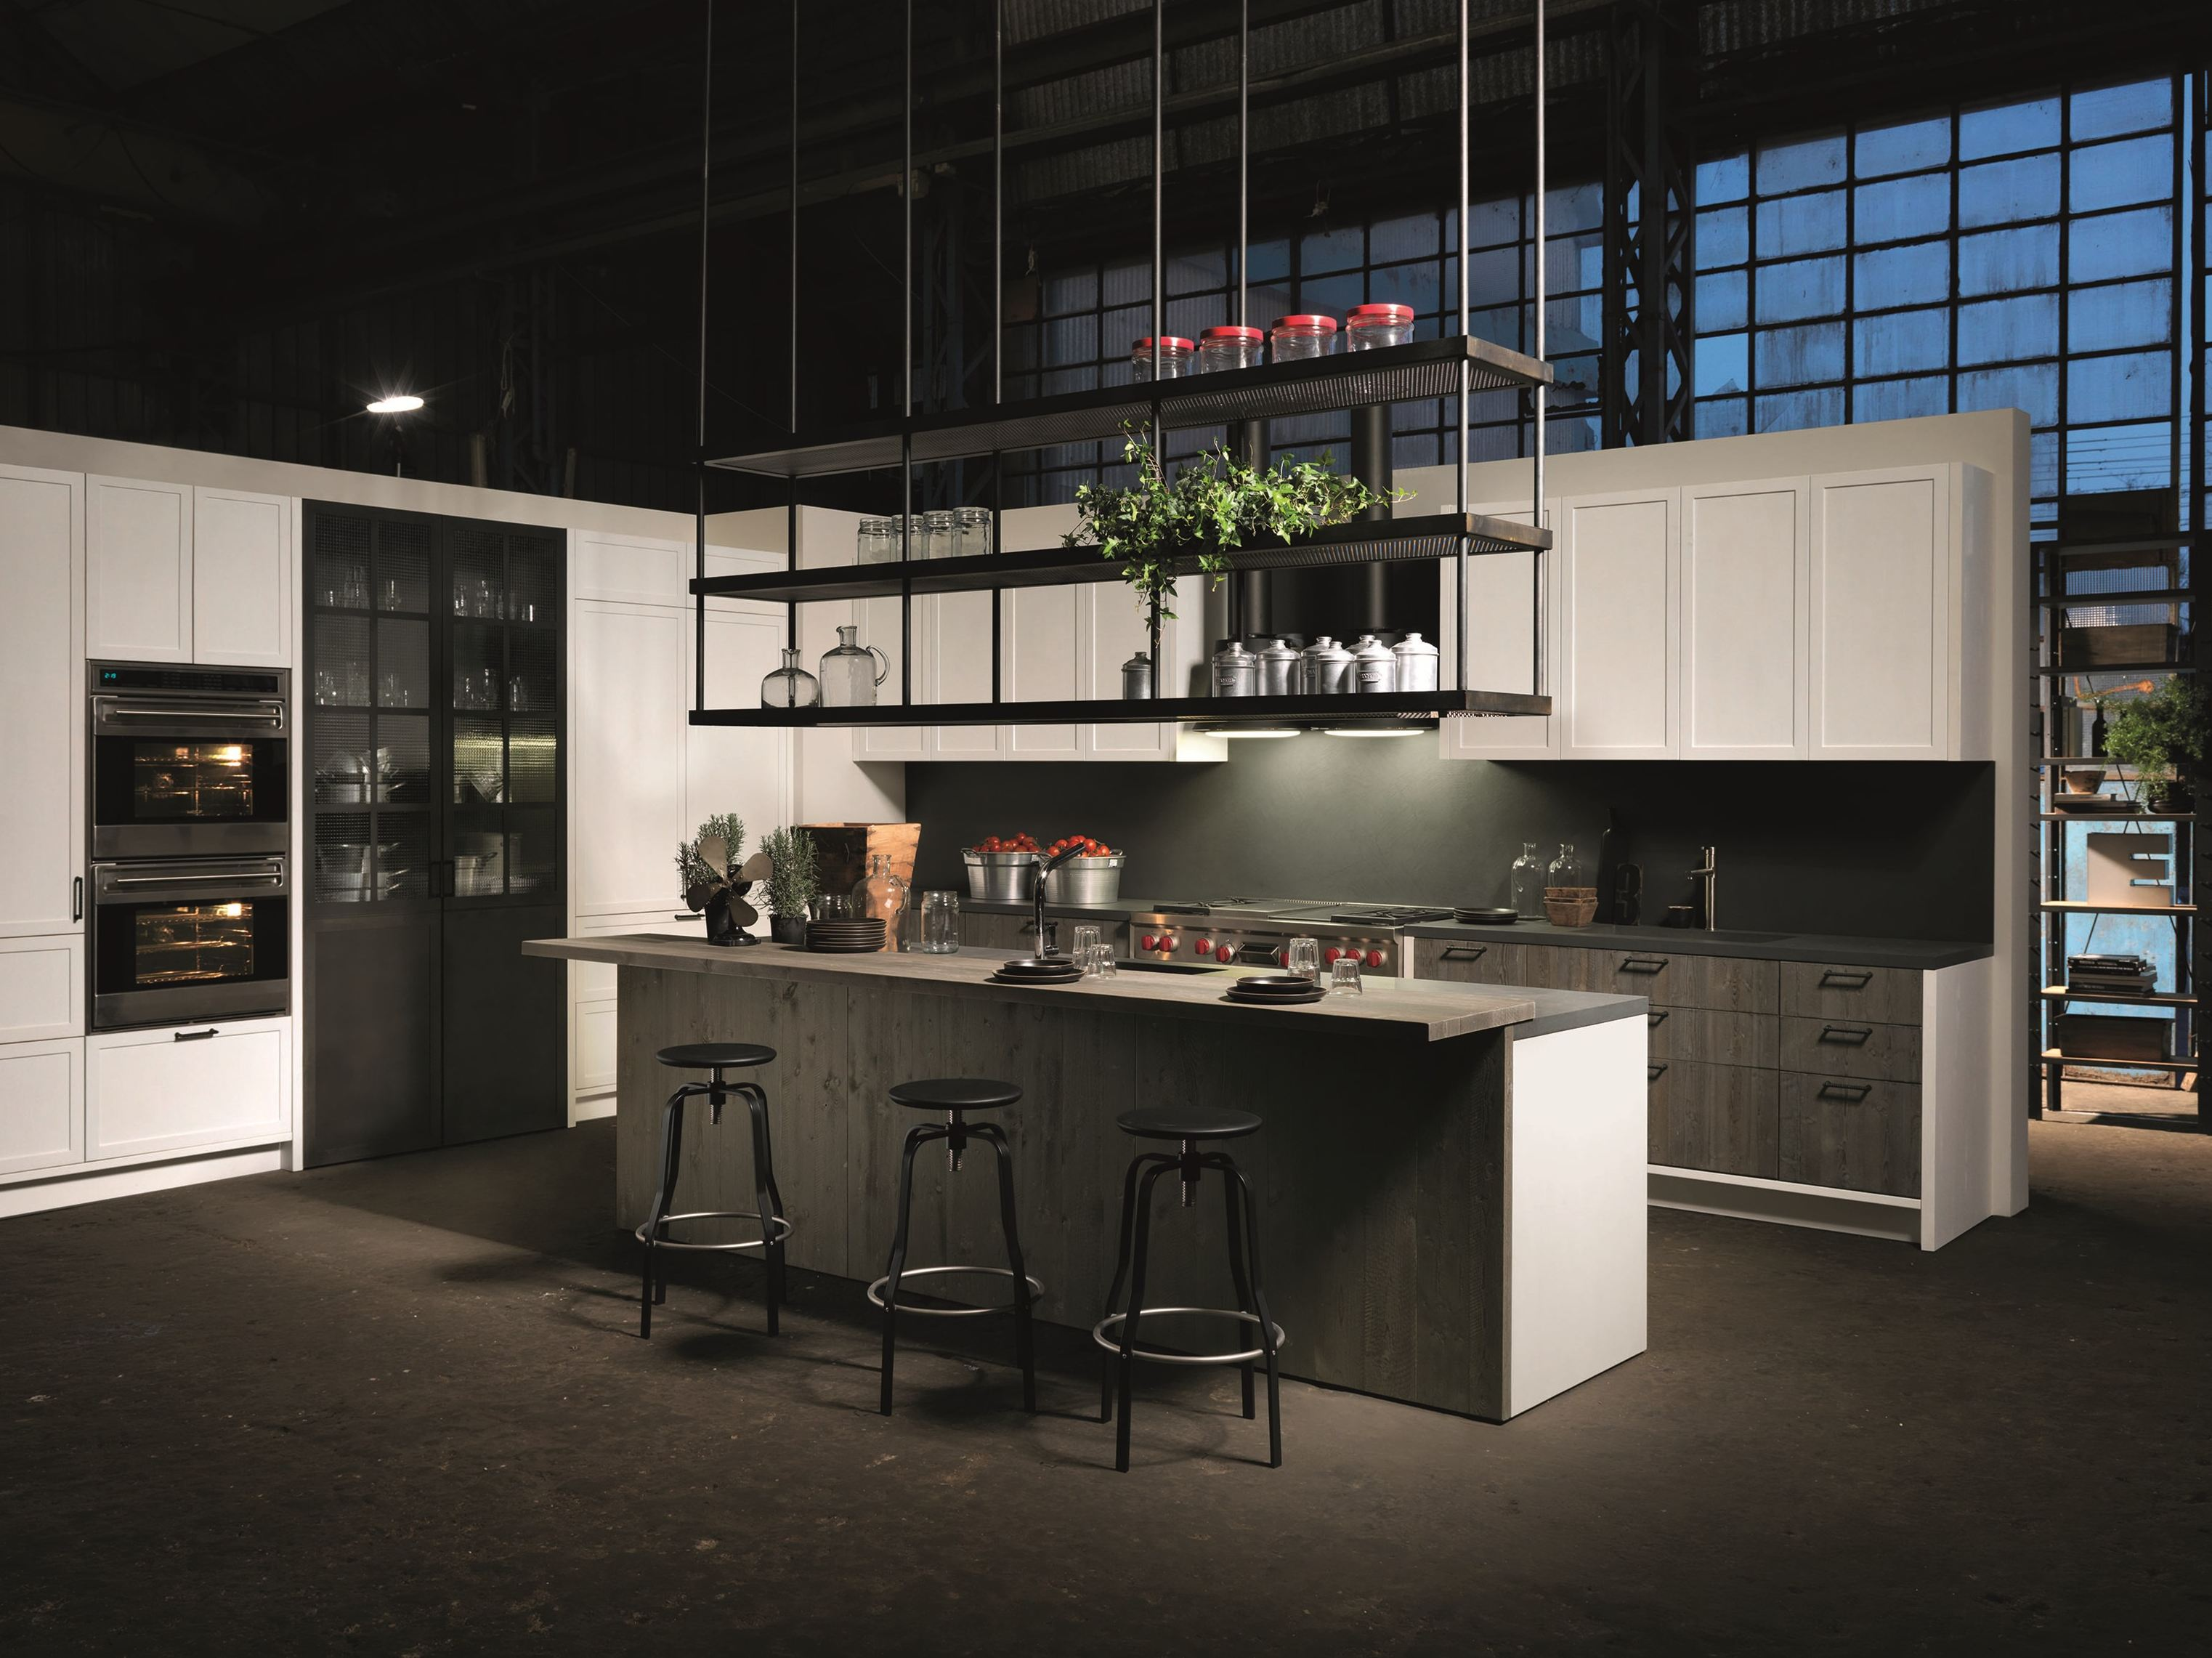 FACTORY | Kitchen With Island Factory Collection By Aster Cucine Design  Lorenzo Granocchia